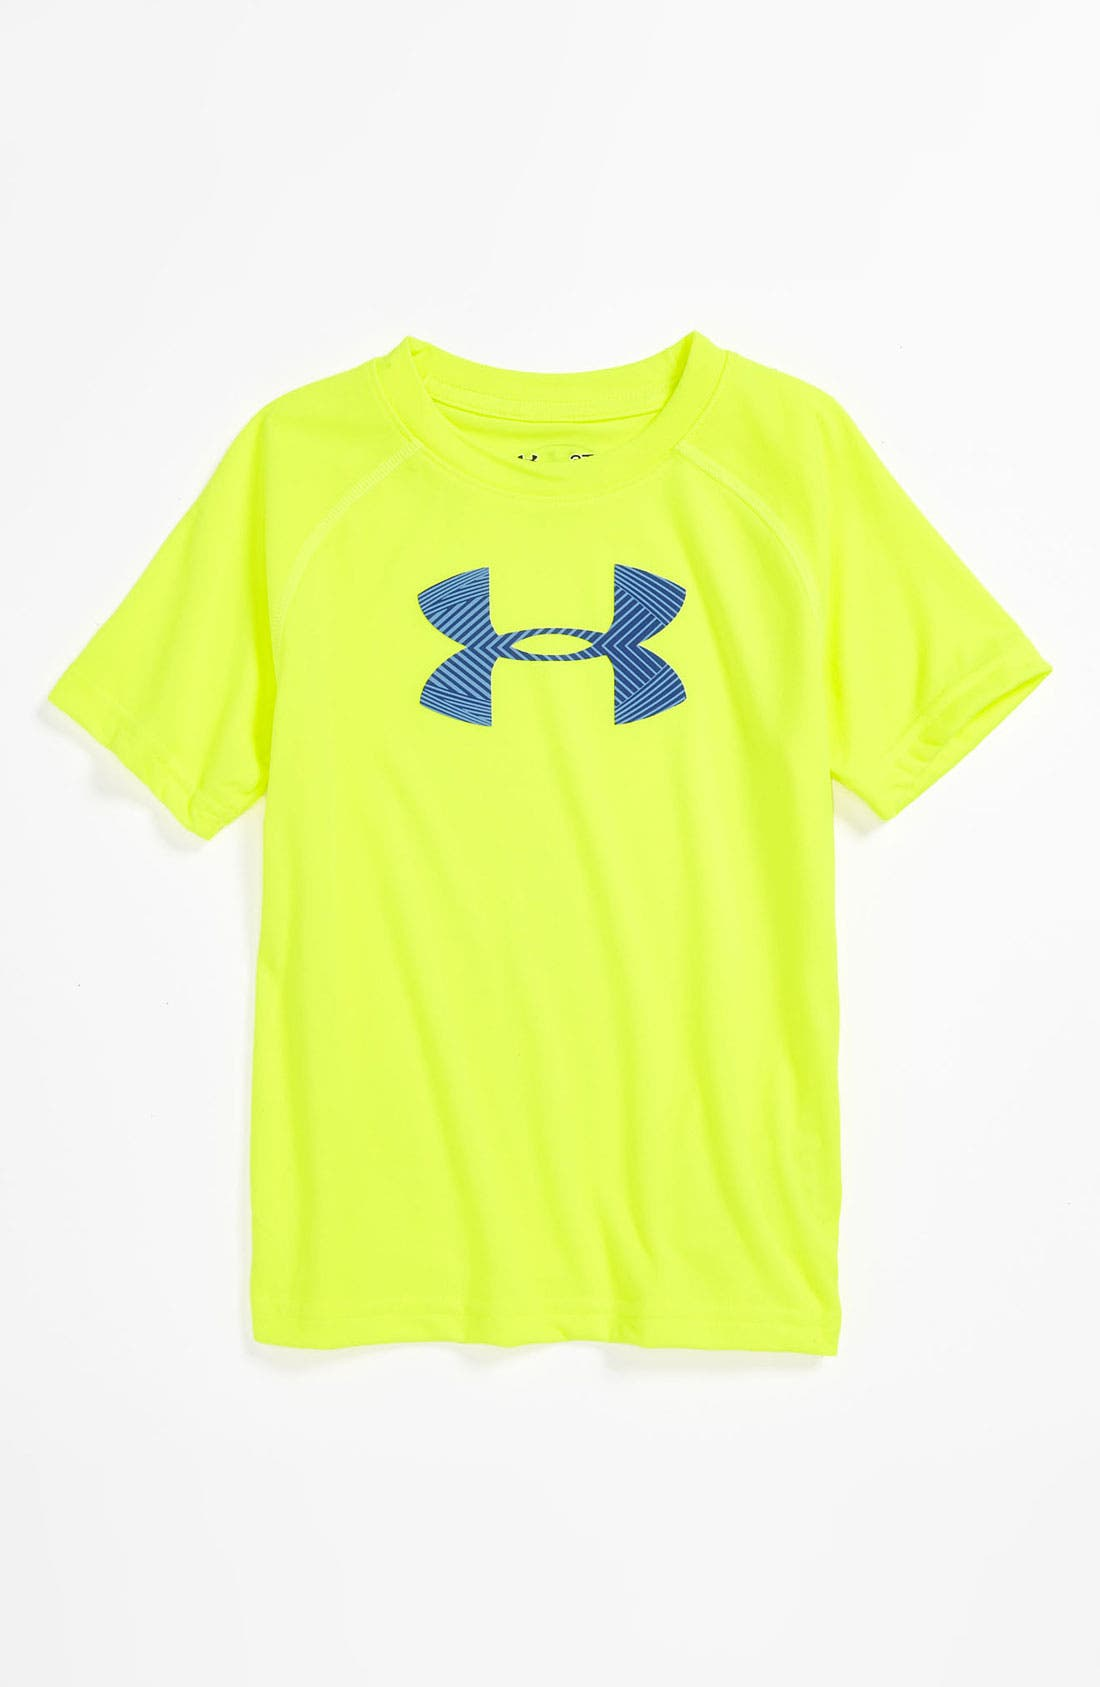 Main Image - Under Armour Neon Logo T-Shirt (Infant)